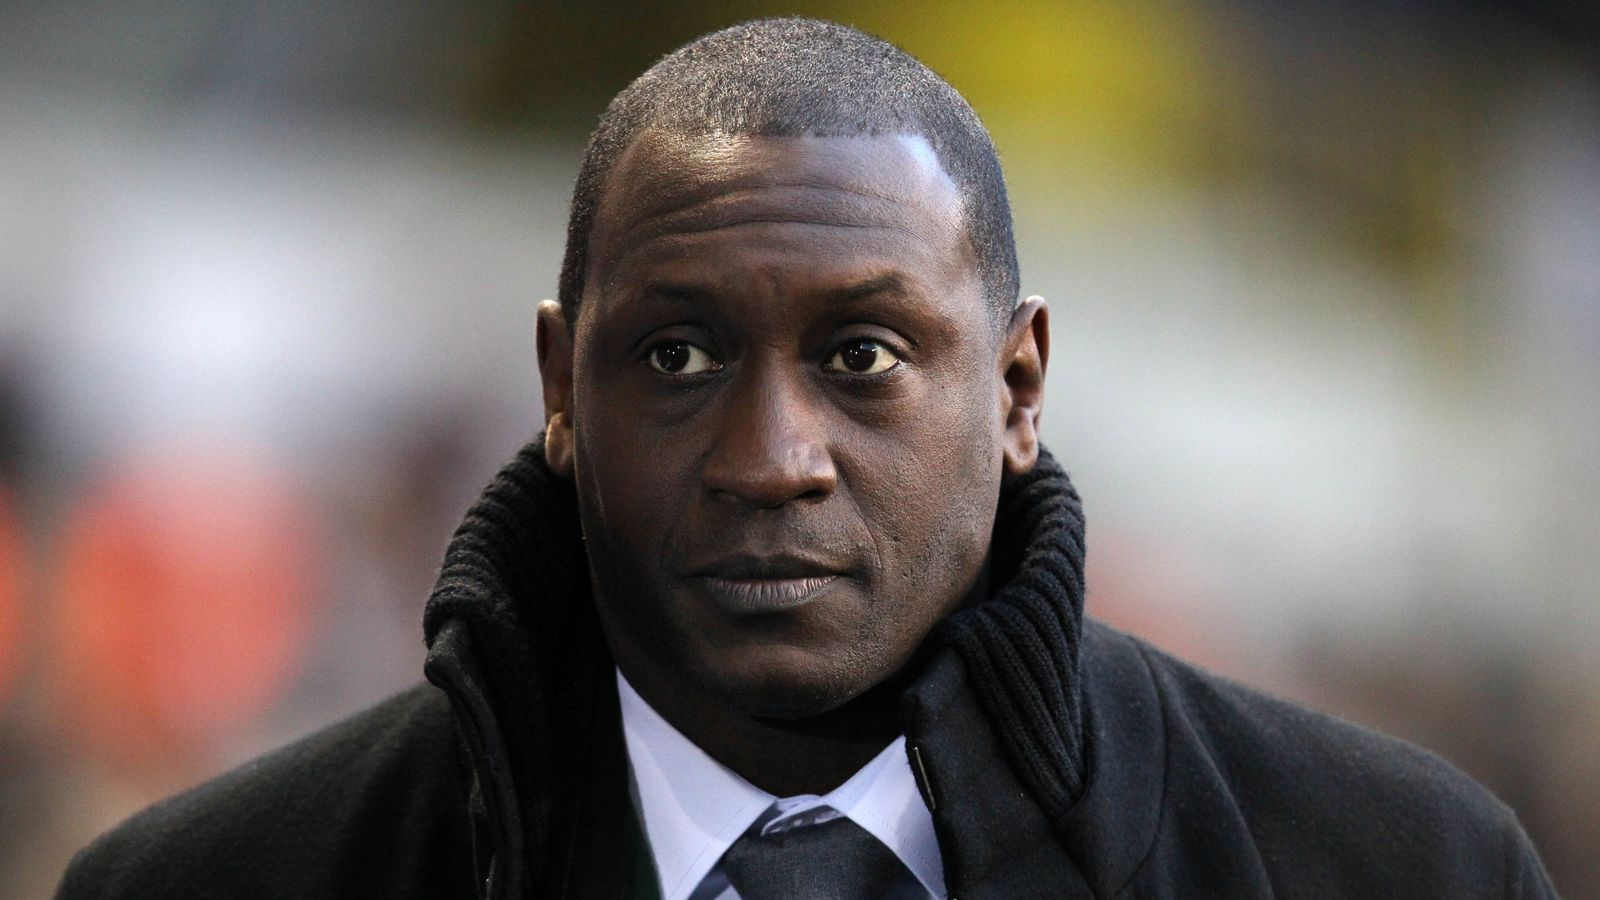 Emile Heskey: Former striker chased from Leicester game in racist incident as young player - Sky Sports